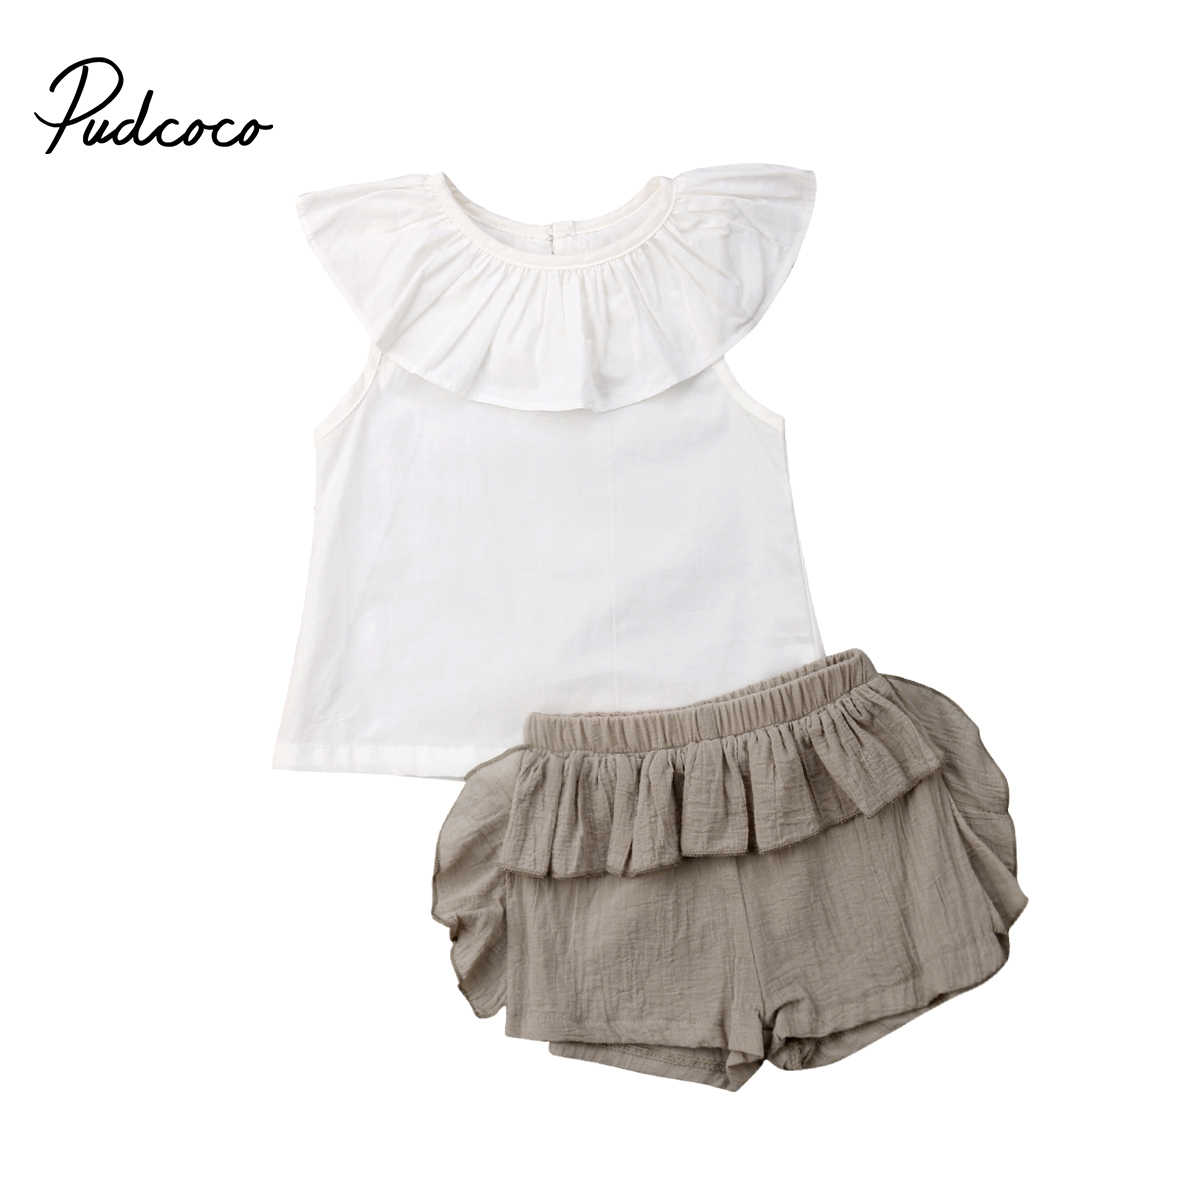 Kid Toddler Baby Girls Ruffle Tops T-shirt Short Pants Outfits Set Summer Casual